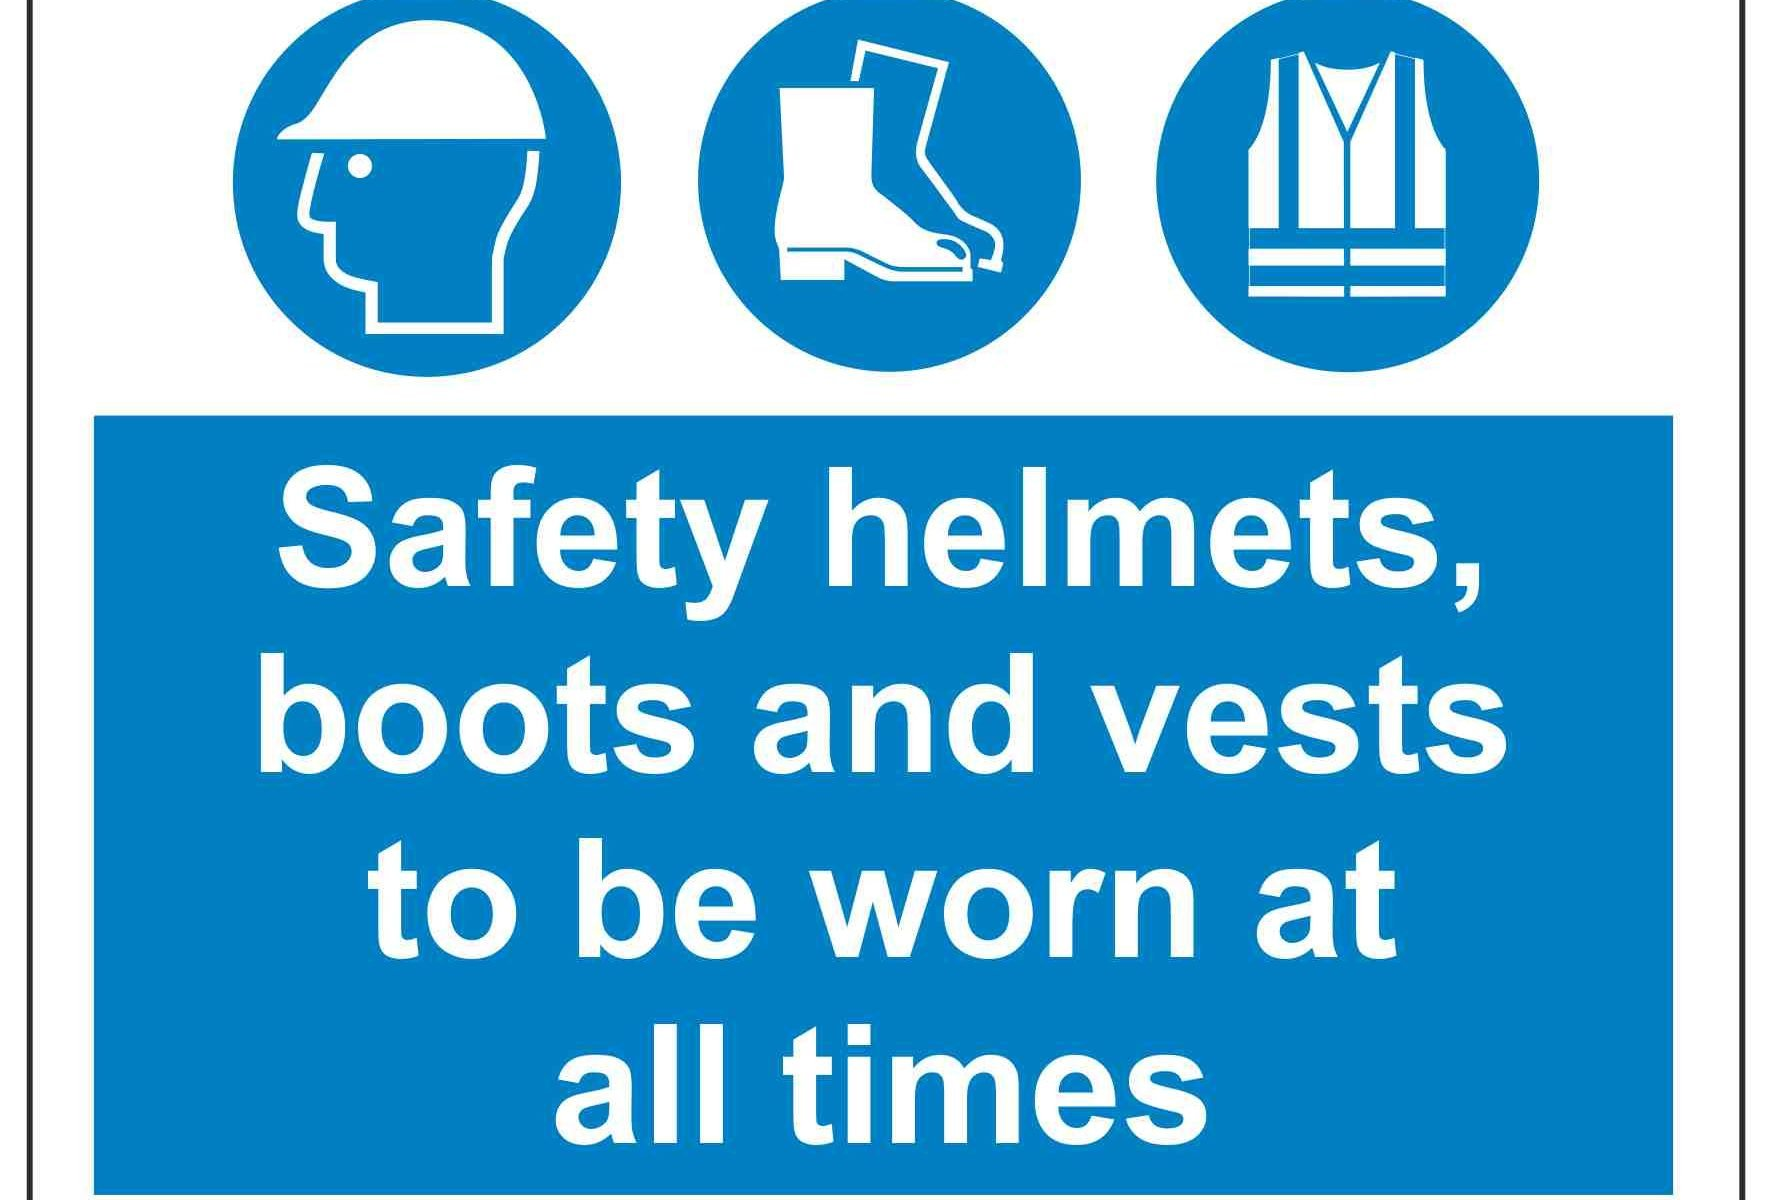 Safety helmets, boots and vests to be worn at all times